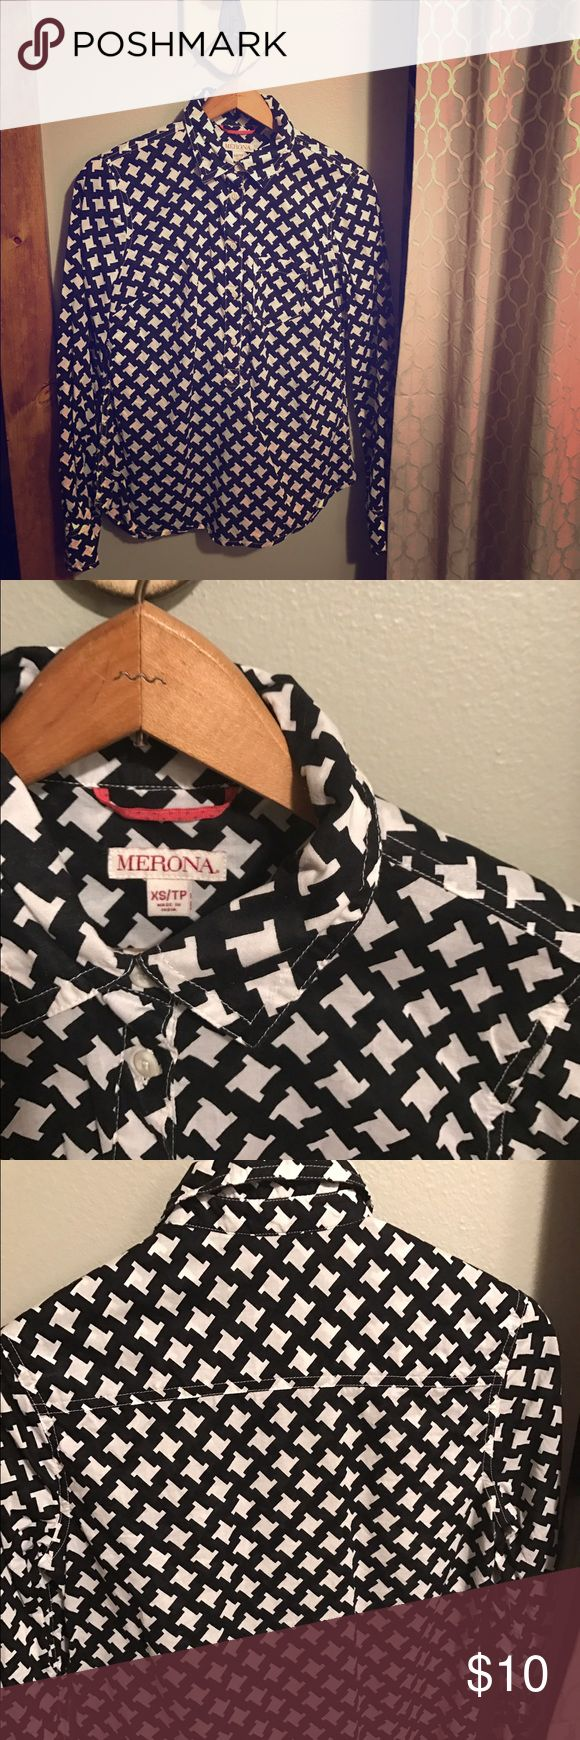 Merona Brand by Target collared blouse Merona Brand by Target cotton 3/4 button up houndstooth shirt. Merona Tops Button Down Shirts